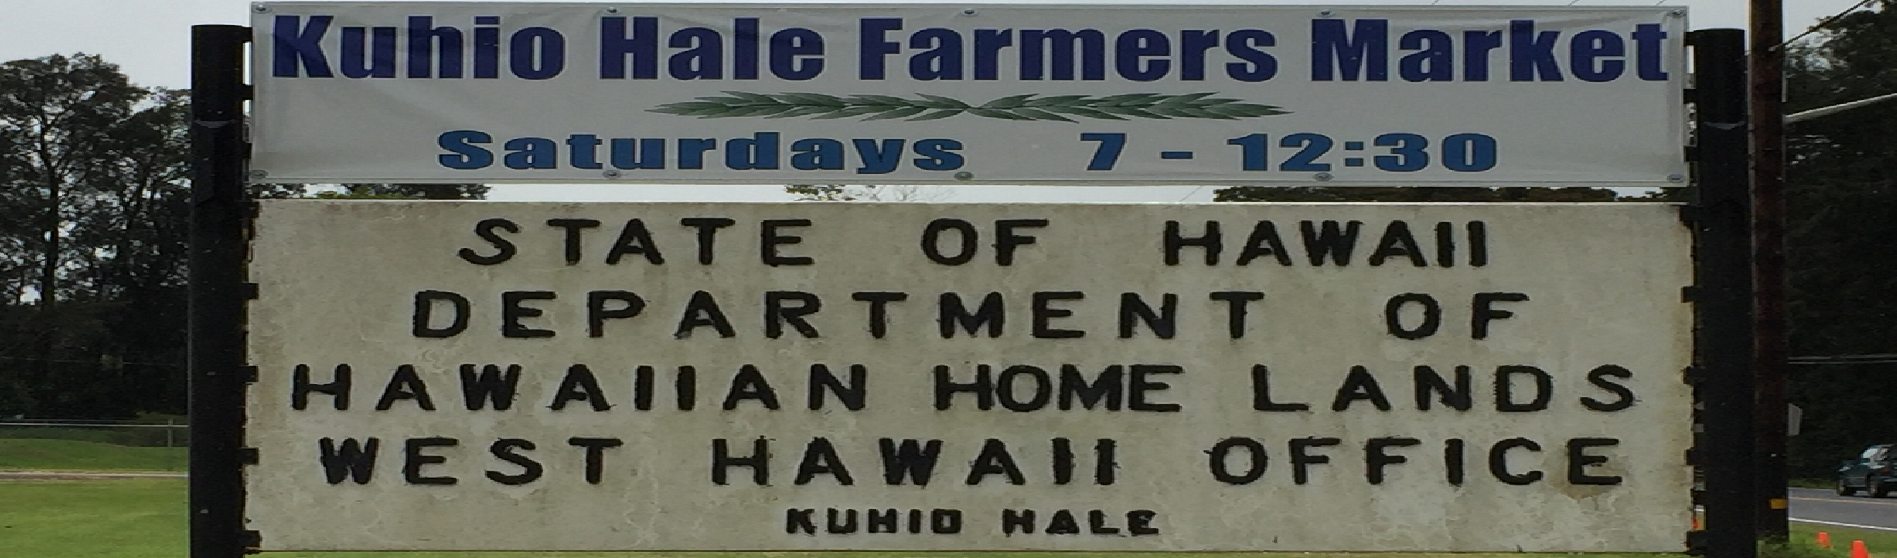 farmers market hawaii